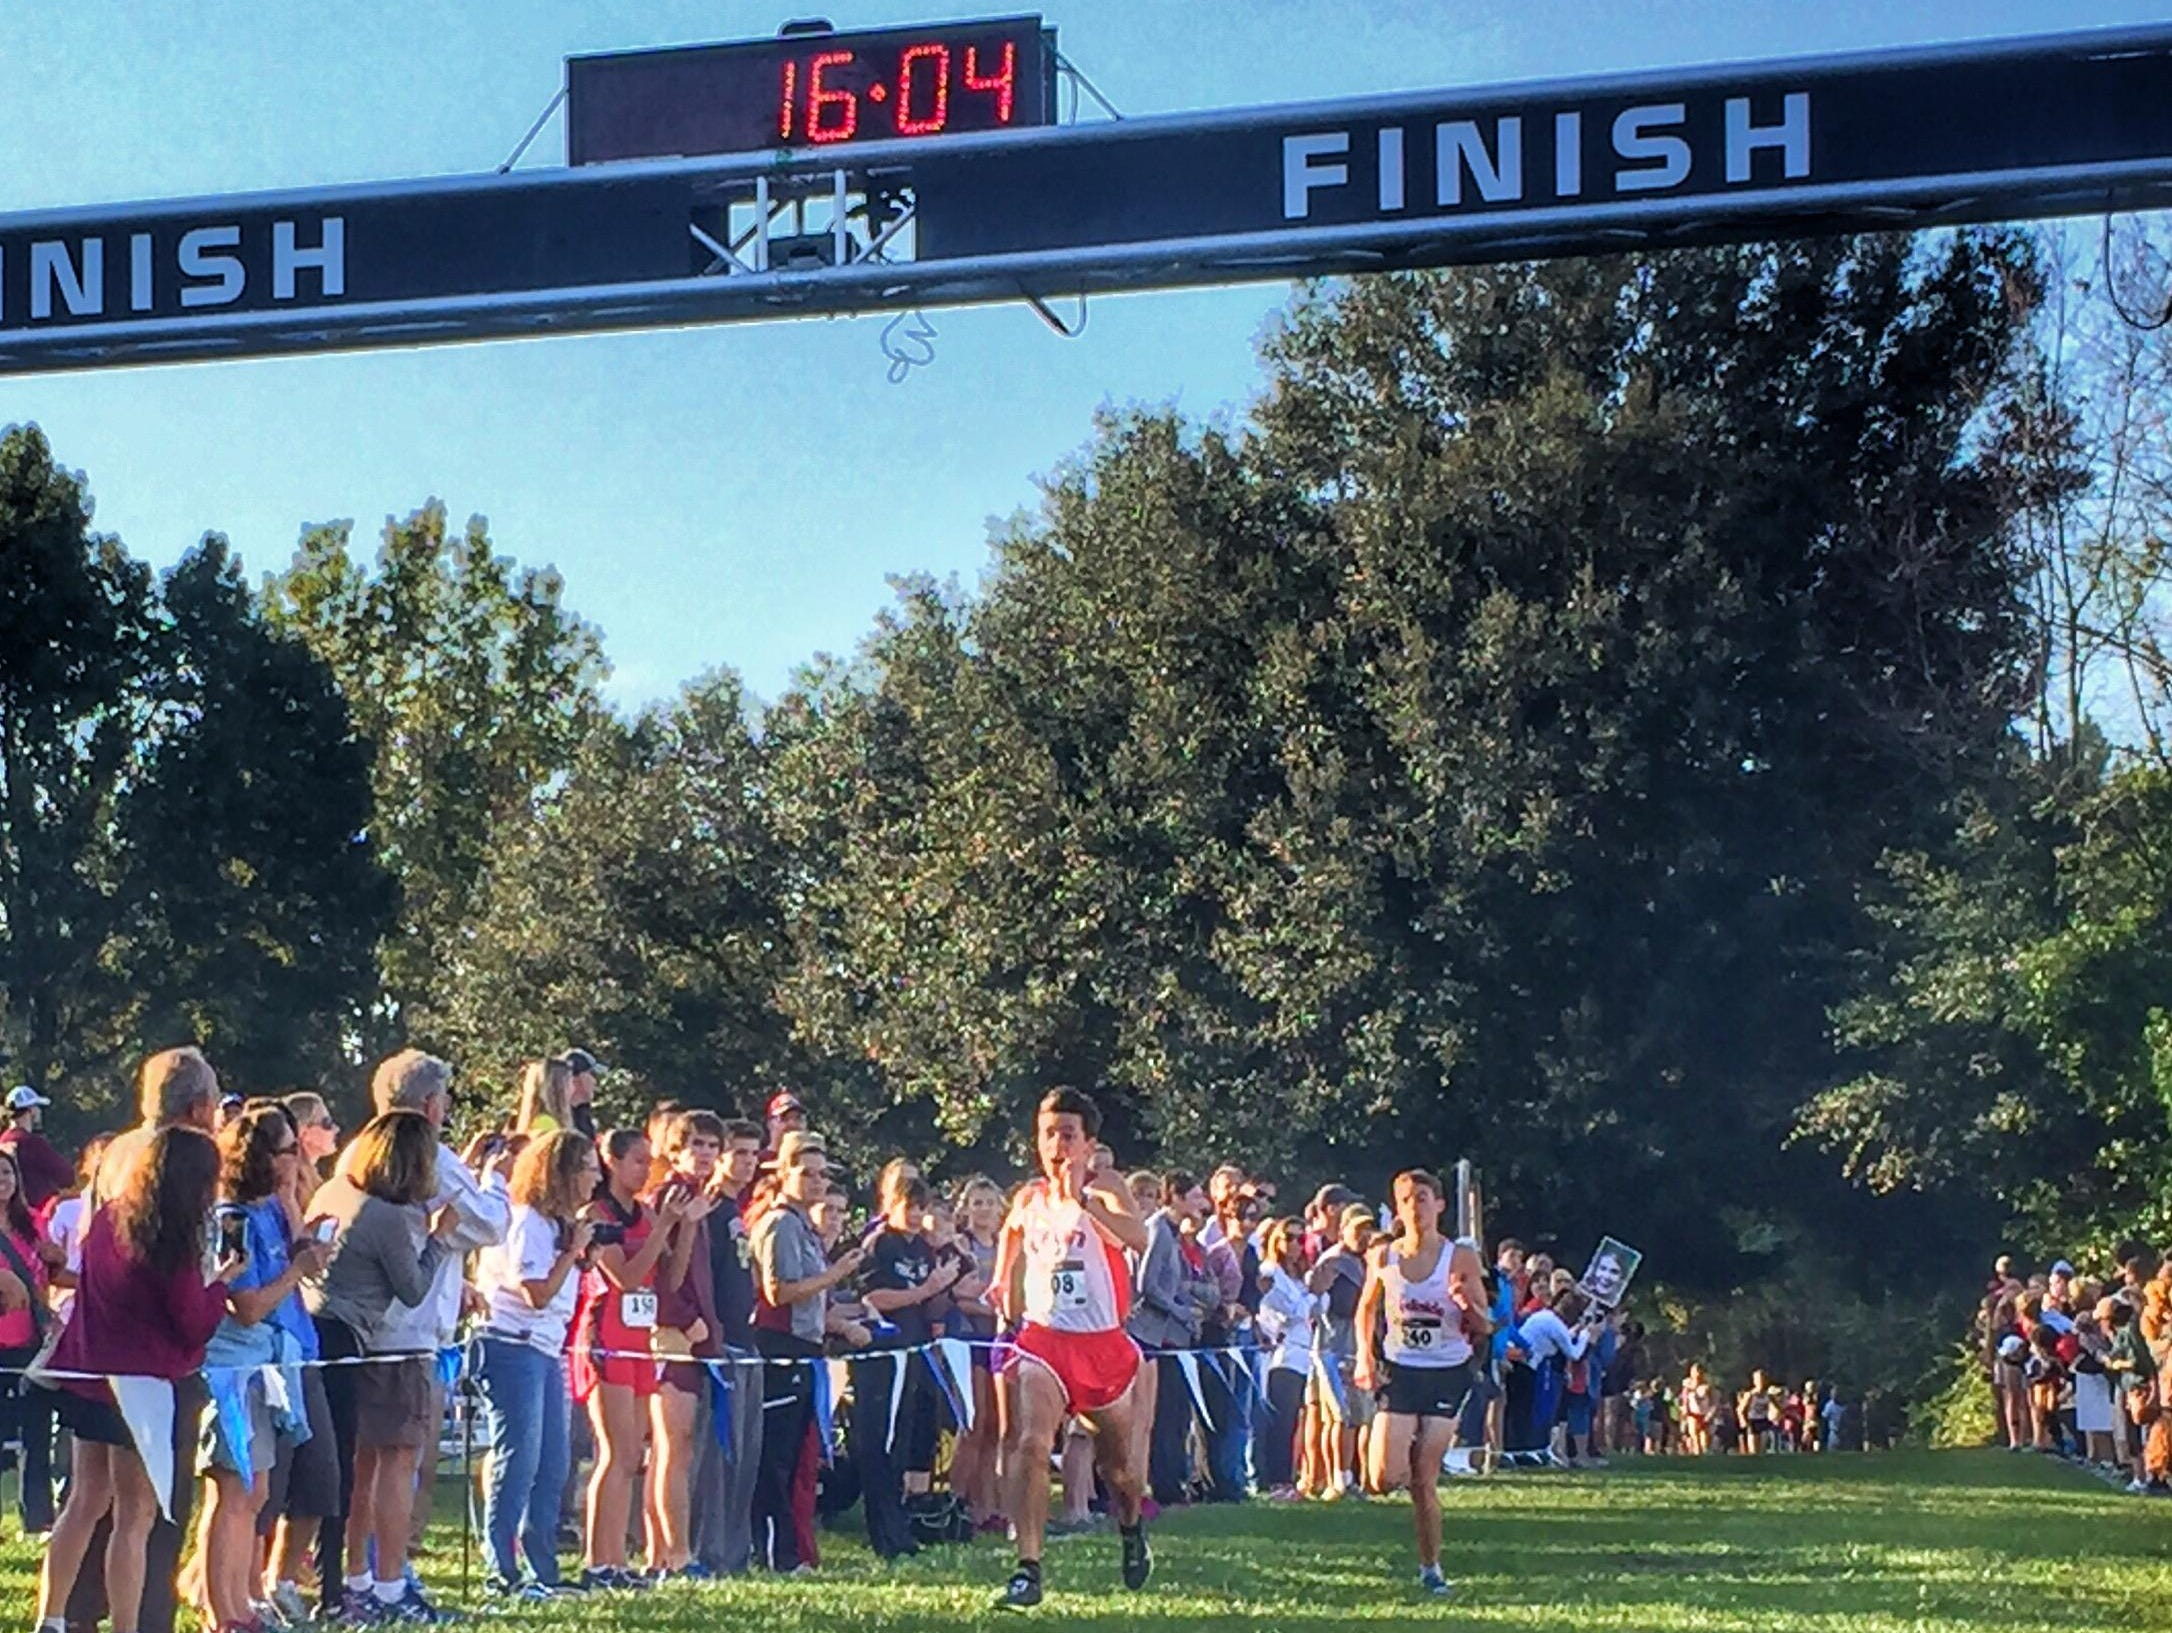 Leon junior Matthew Cashin defined his cross country season to this point with a win on Saturday at Alligator Lake in Lake City, capturing a Region 1-3A title with a sprint past Creekside's Matthew Clark.